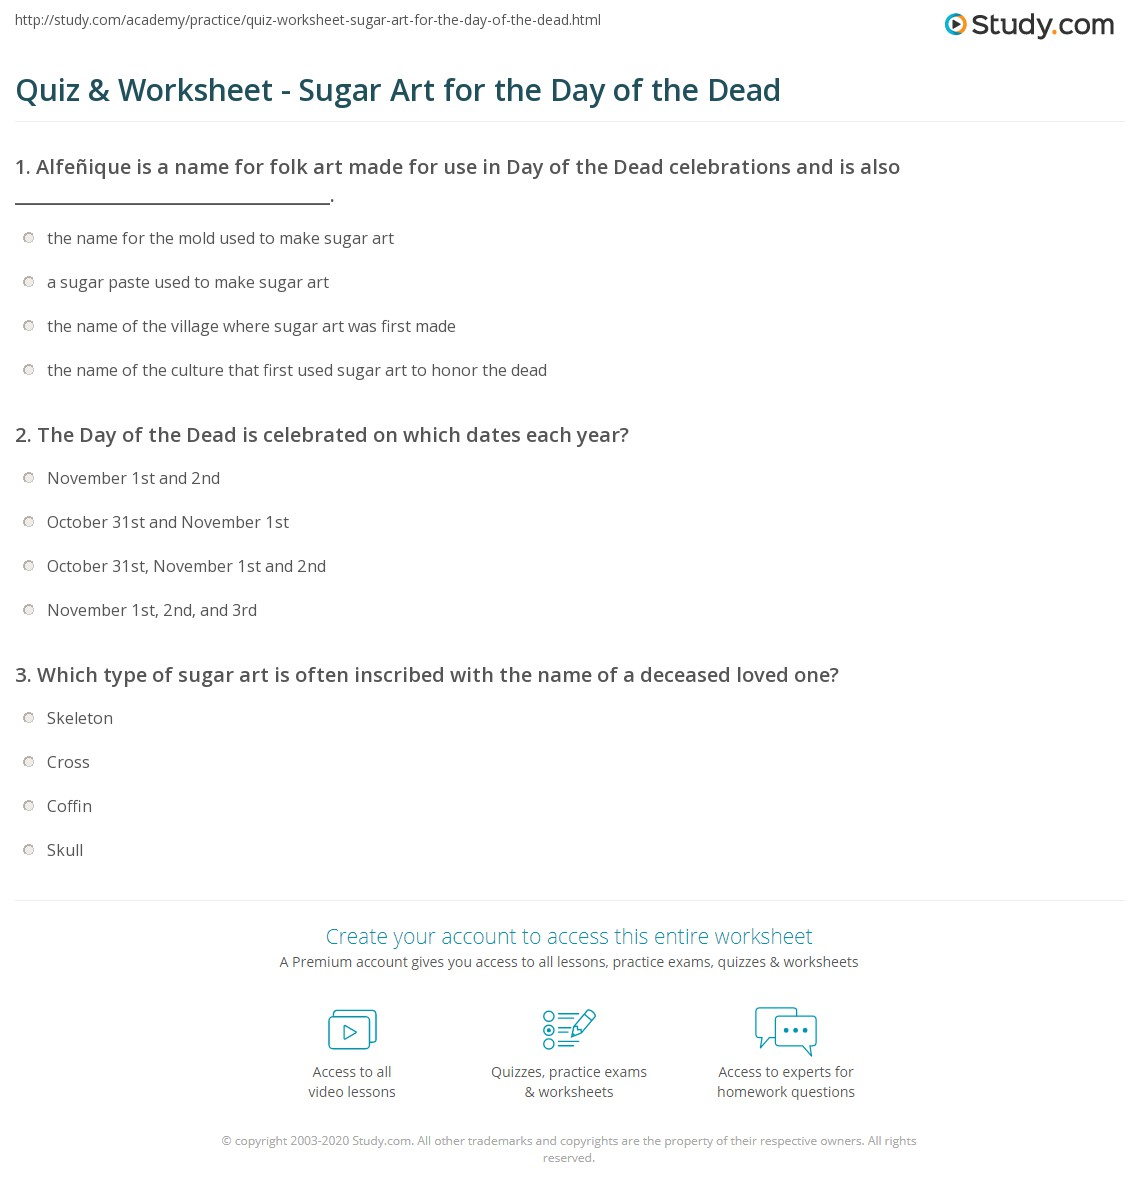 Quiz Worksheet Sugar Art For The Day Of The Dead Study